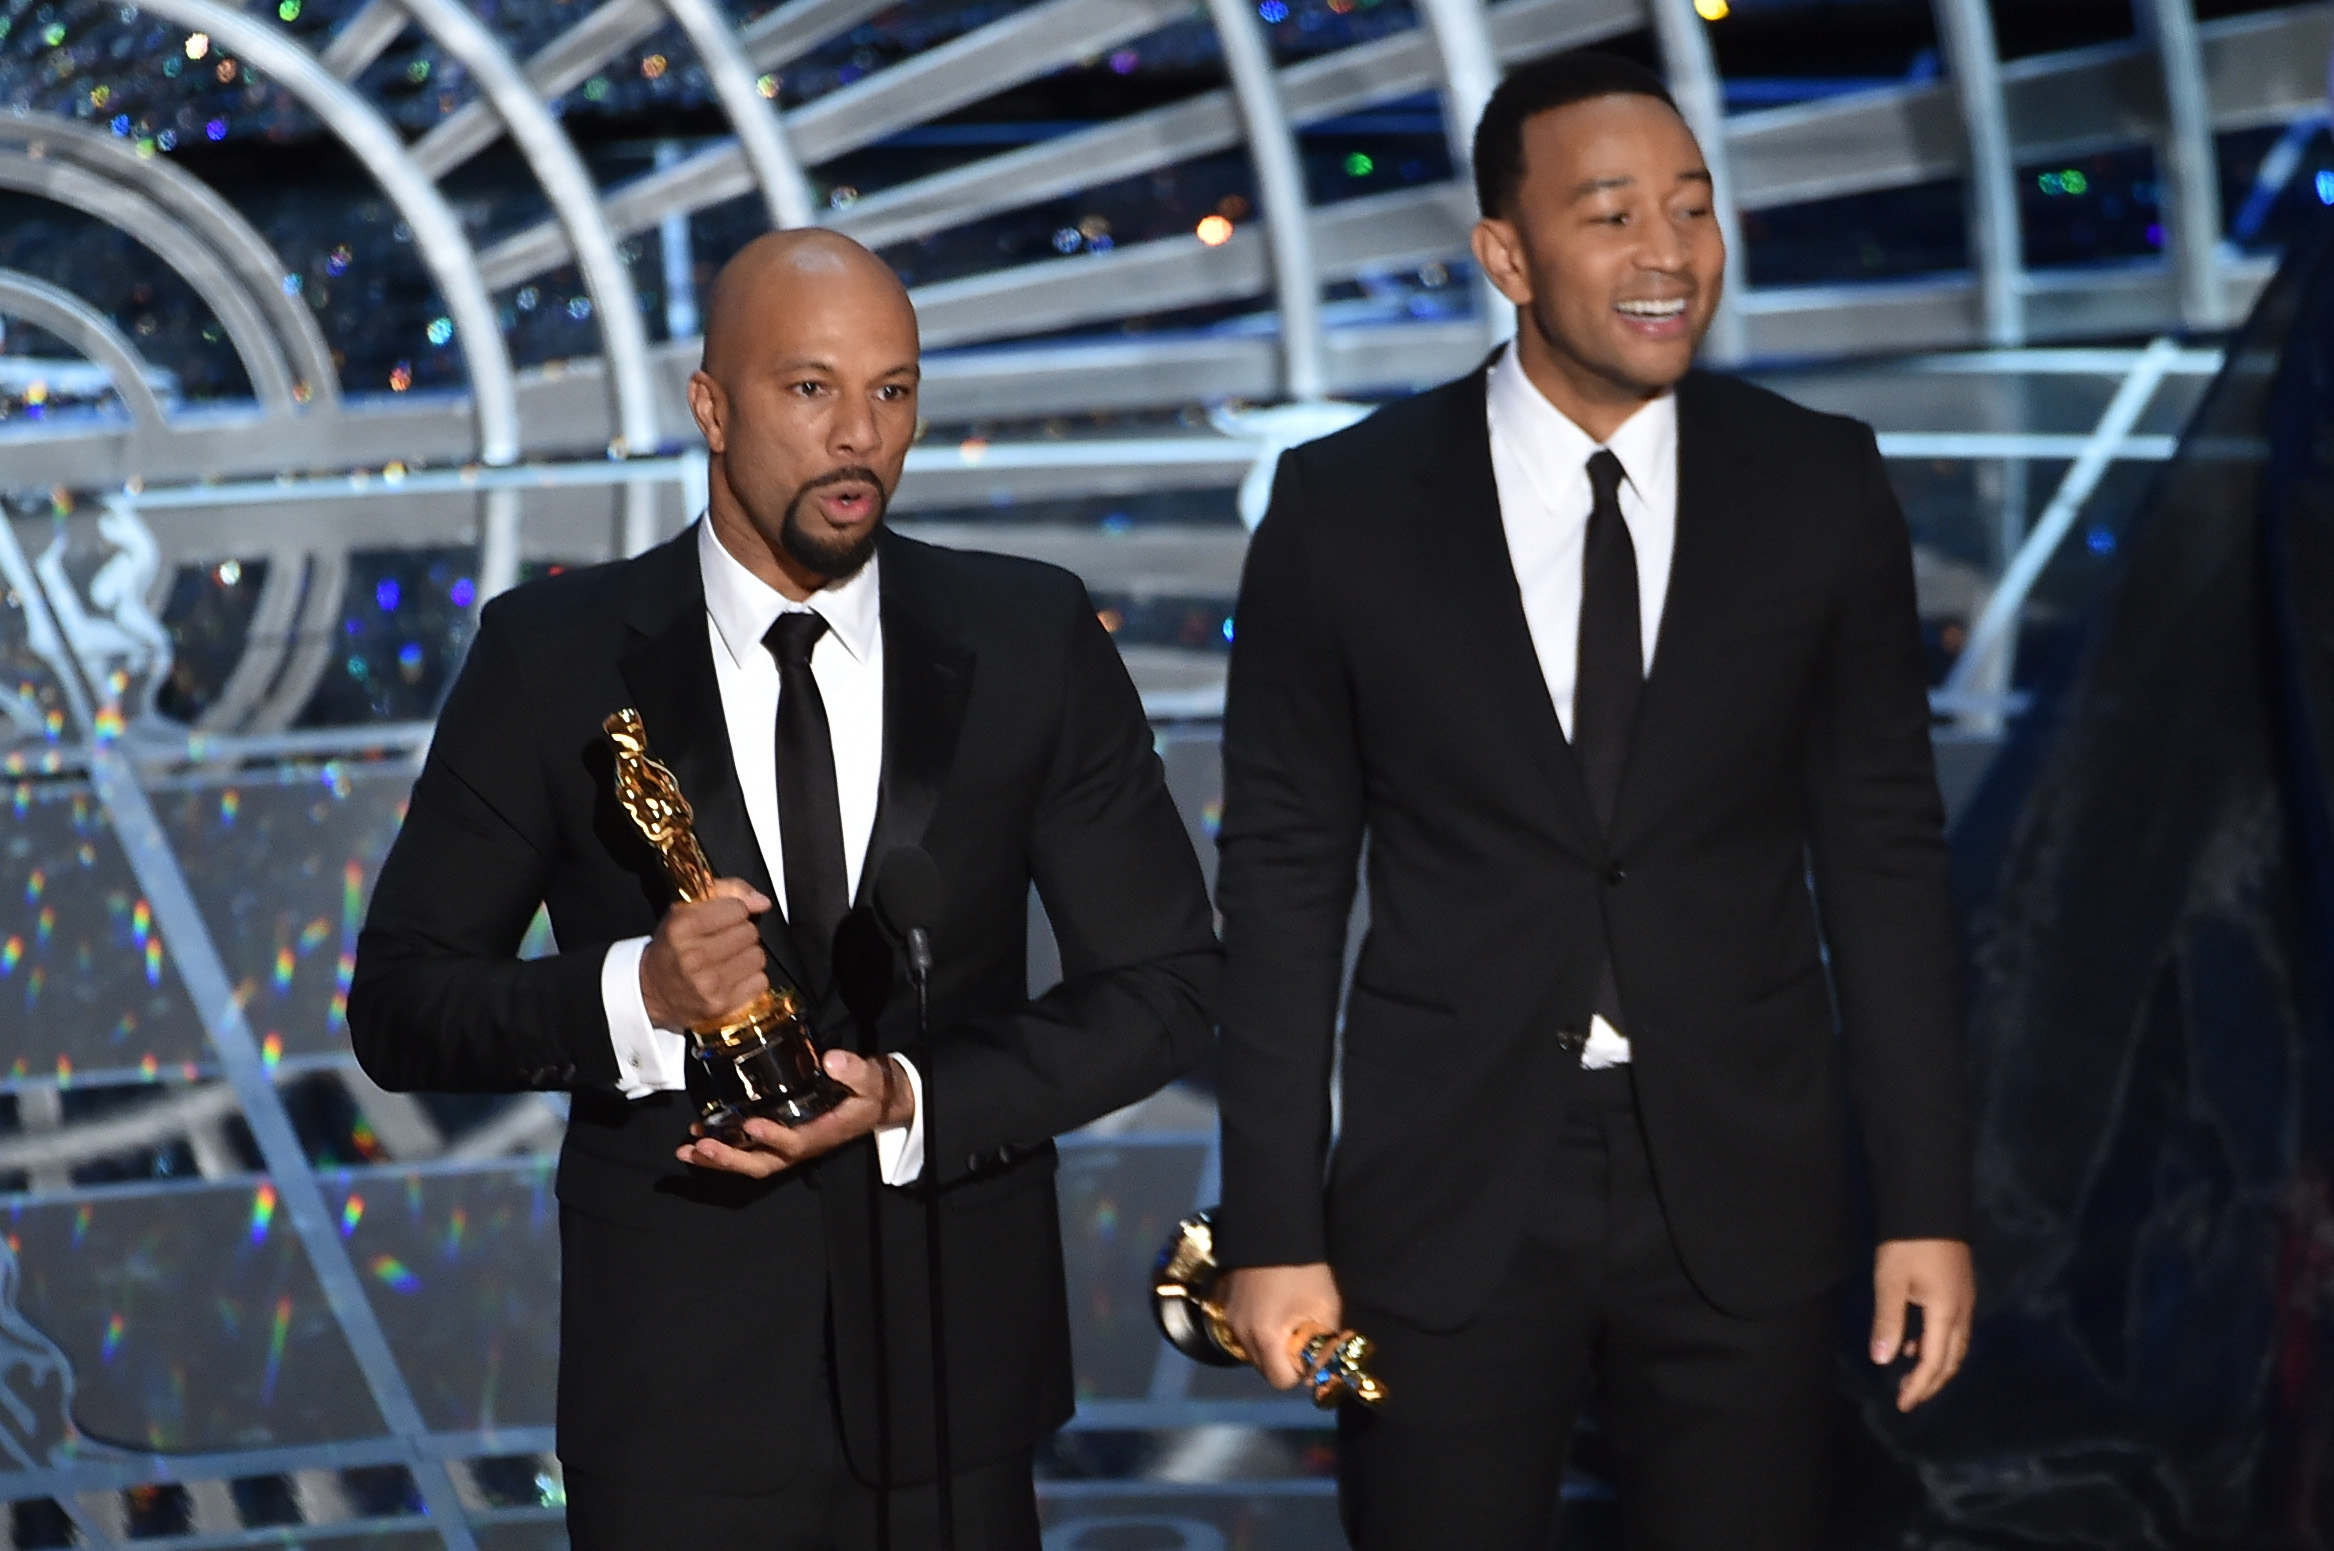 HOLLYWOOD, CA - FEBRUARY 22:  Musicians Common (L) and John Legend accept the Best Original Song Award for 'Glory' from 'Selm